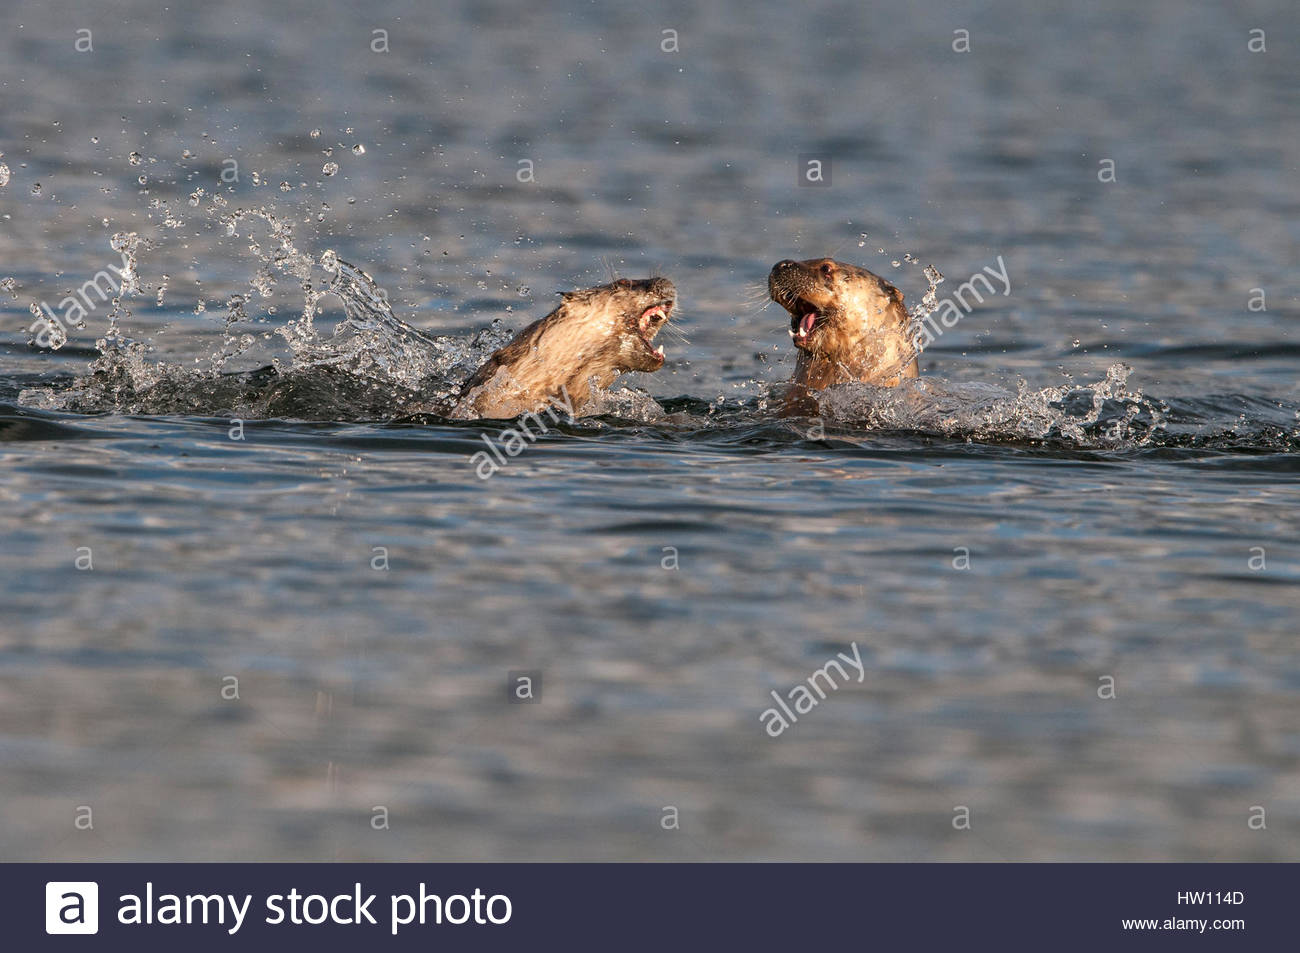 A river otter fight turns fierce as they fight in the river. - Stock Image